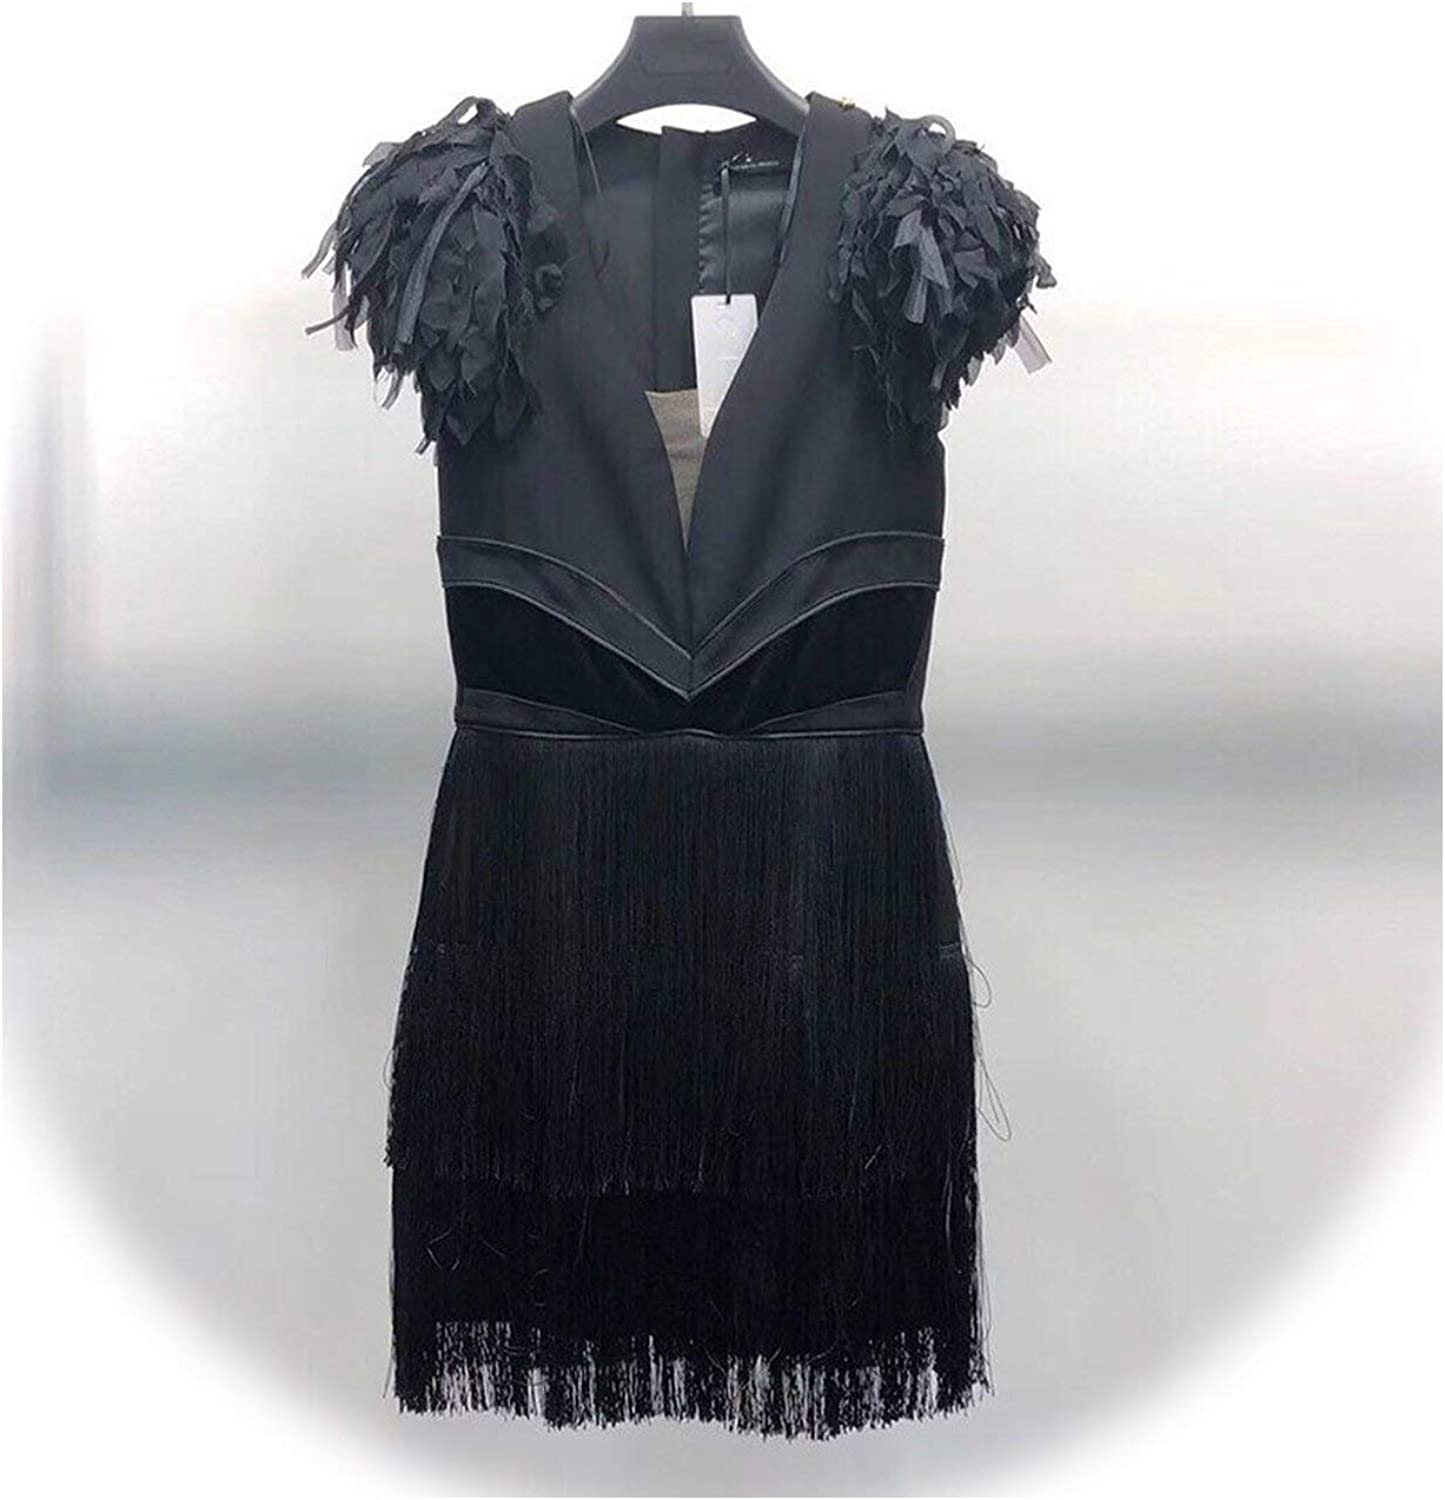 Dreamedge Patchwork Tassel Mini Dresses Women Sleeveless V Neck Sexy Black Party Dress Female Fashion Clothing 2019 Autumn